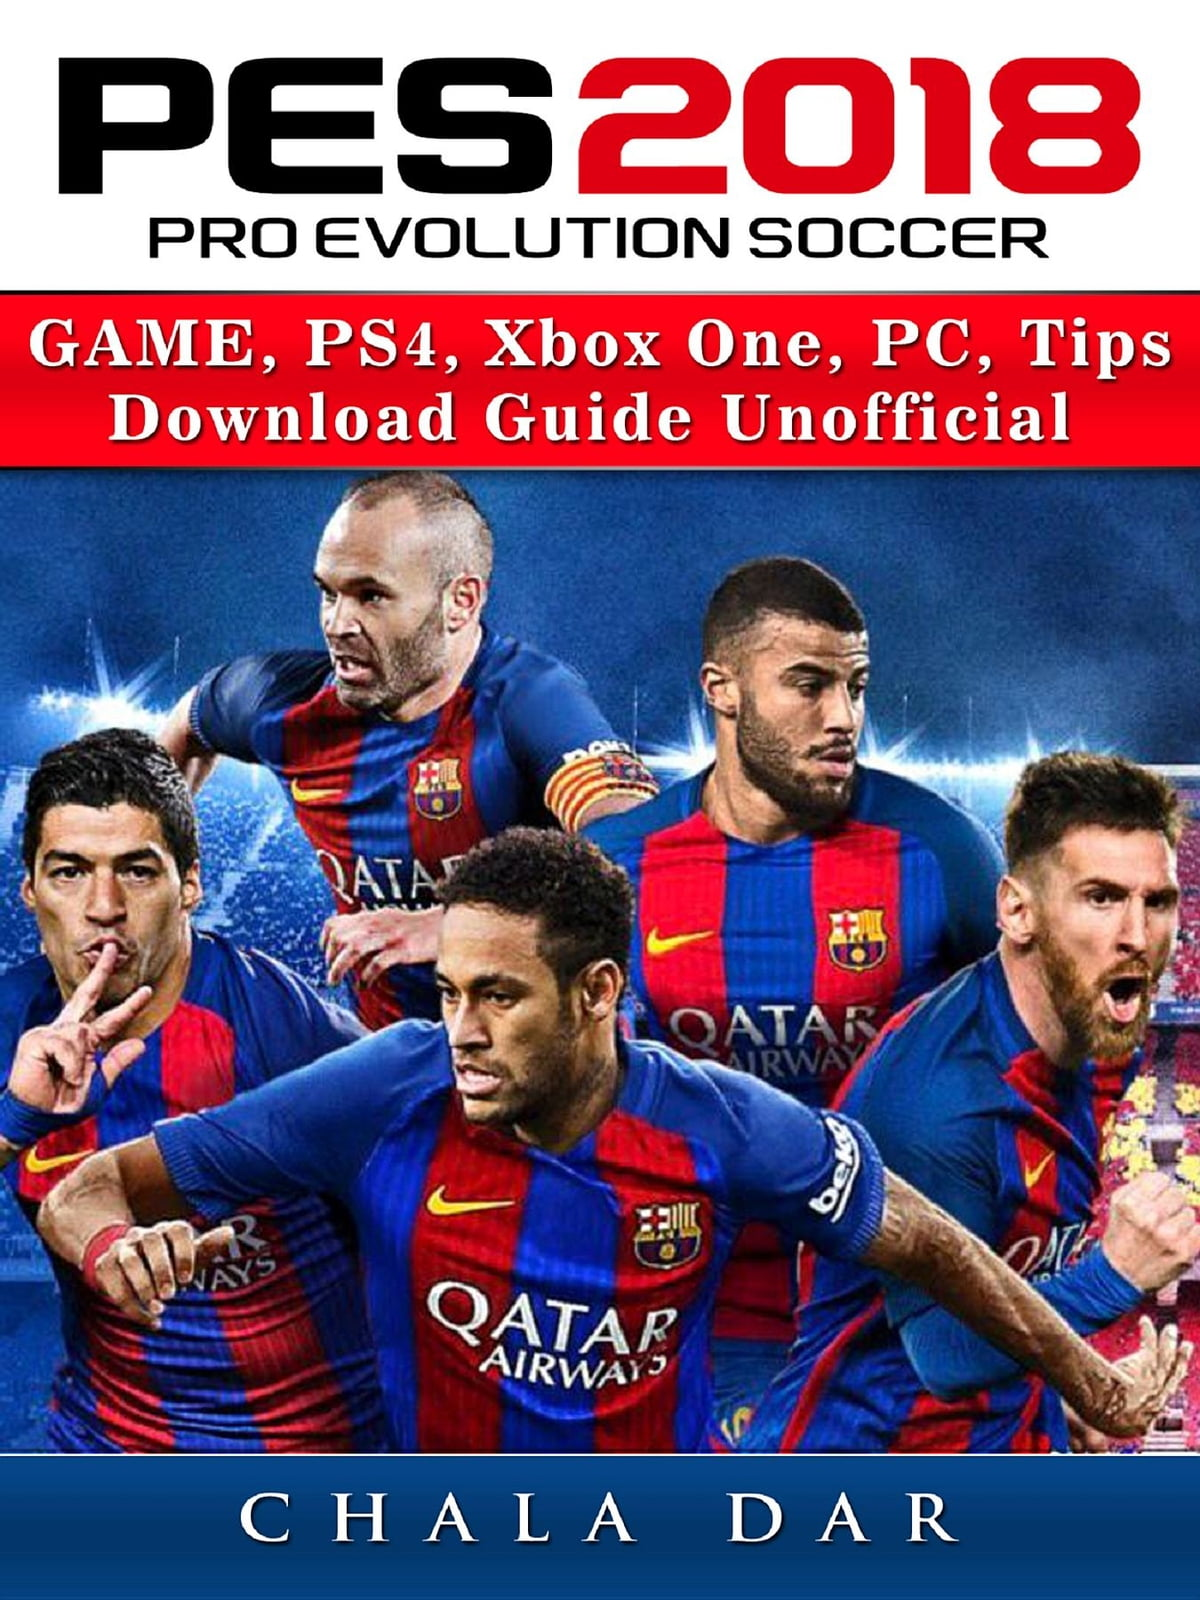 Pro Evolution Soccer 2018 Game Ps4 Xbox One Pc Tips Download Pes Guide Unofficial Ebook Door Chala Dar 9781387330140 Rakuten Kobo